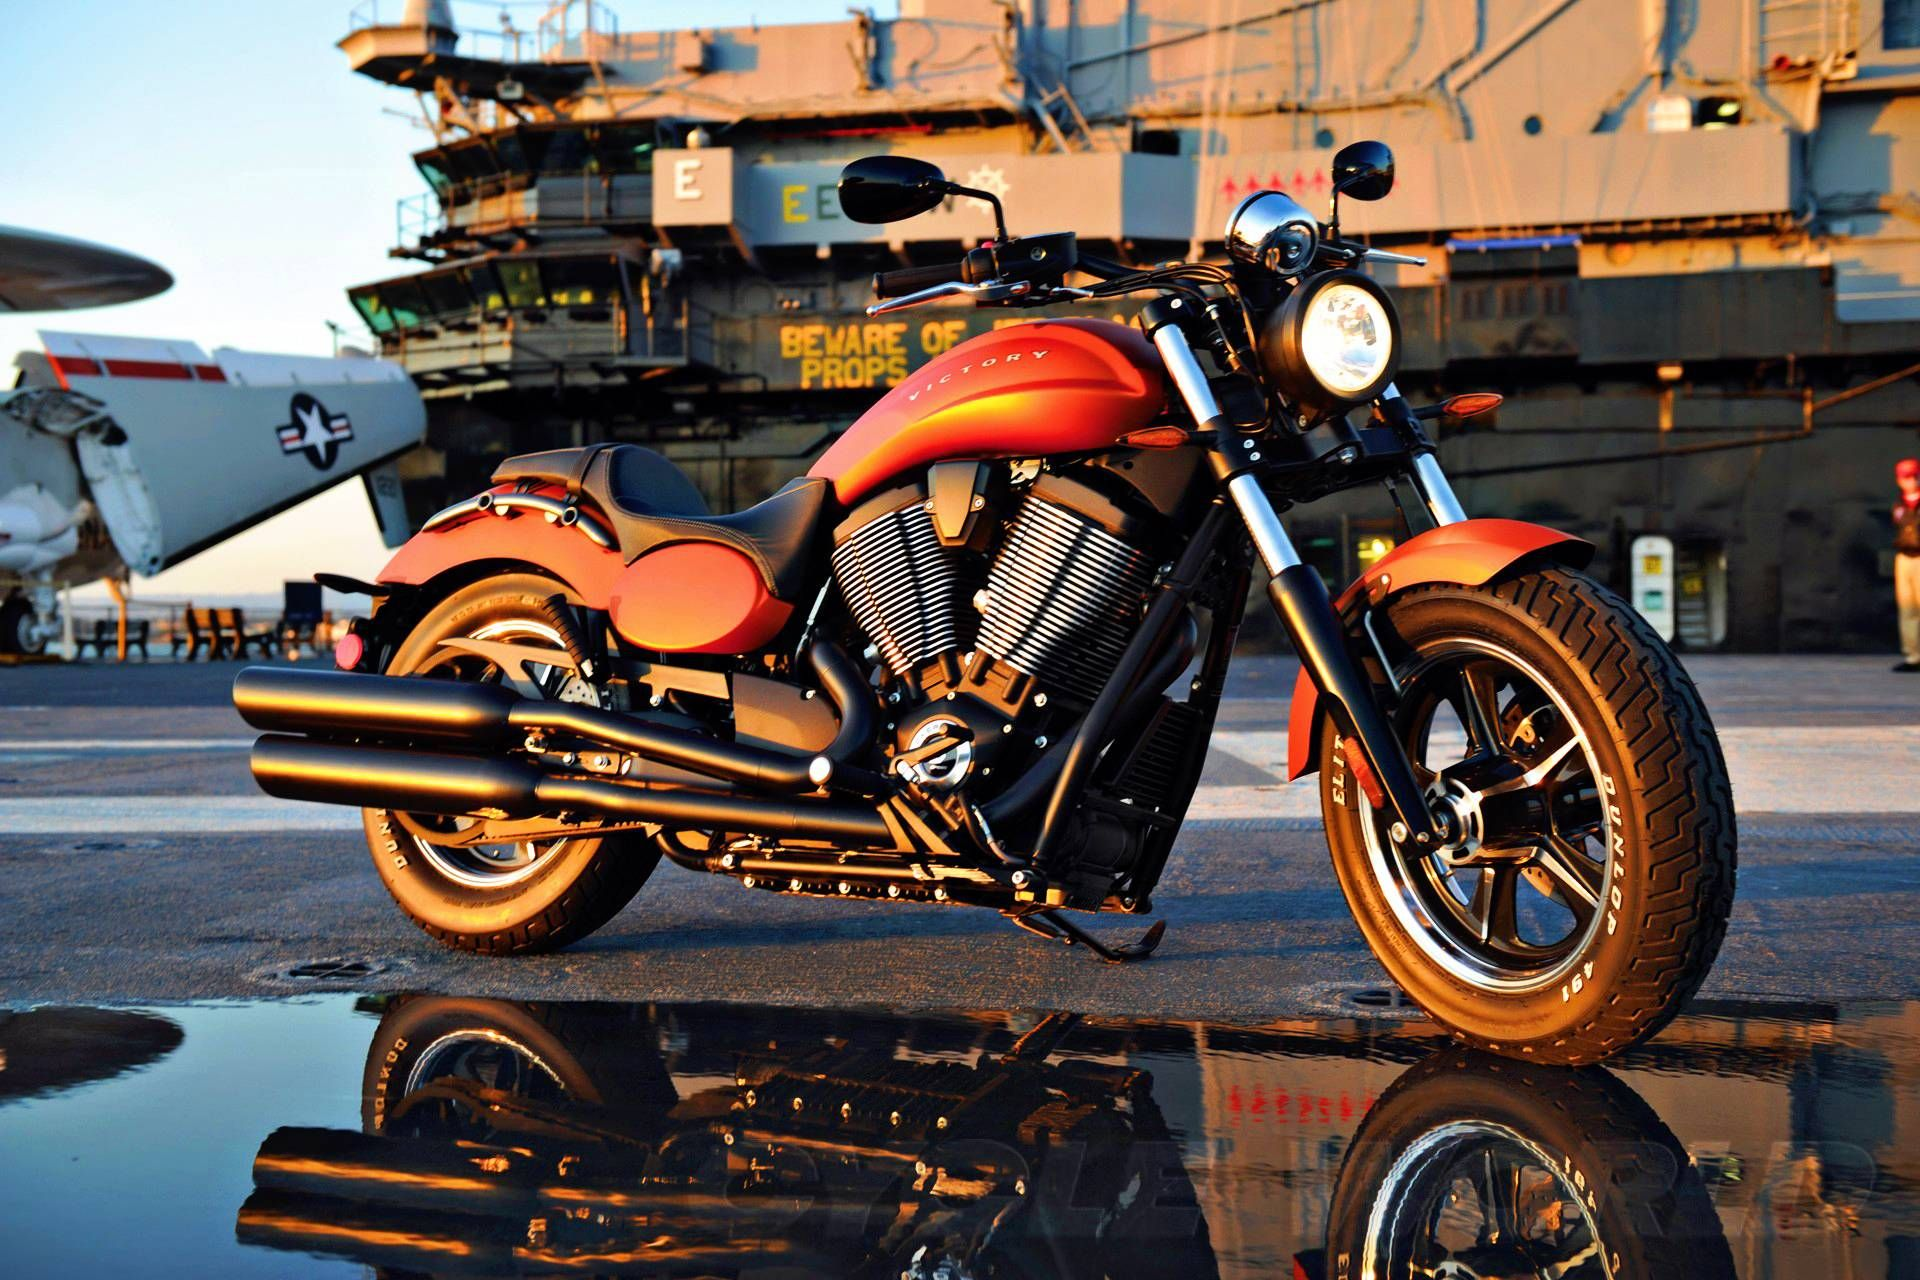 victory motorcycle wallpapers get free top quality victory motorcycle wallpapers for your desktop pc background